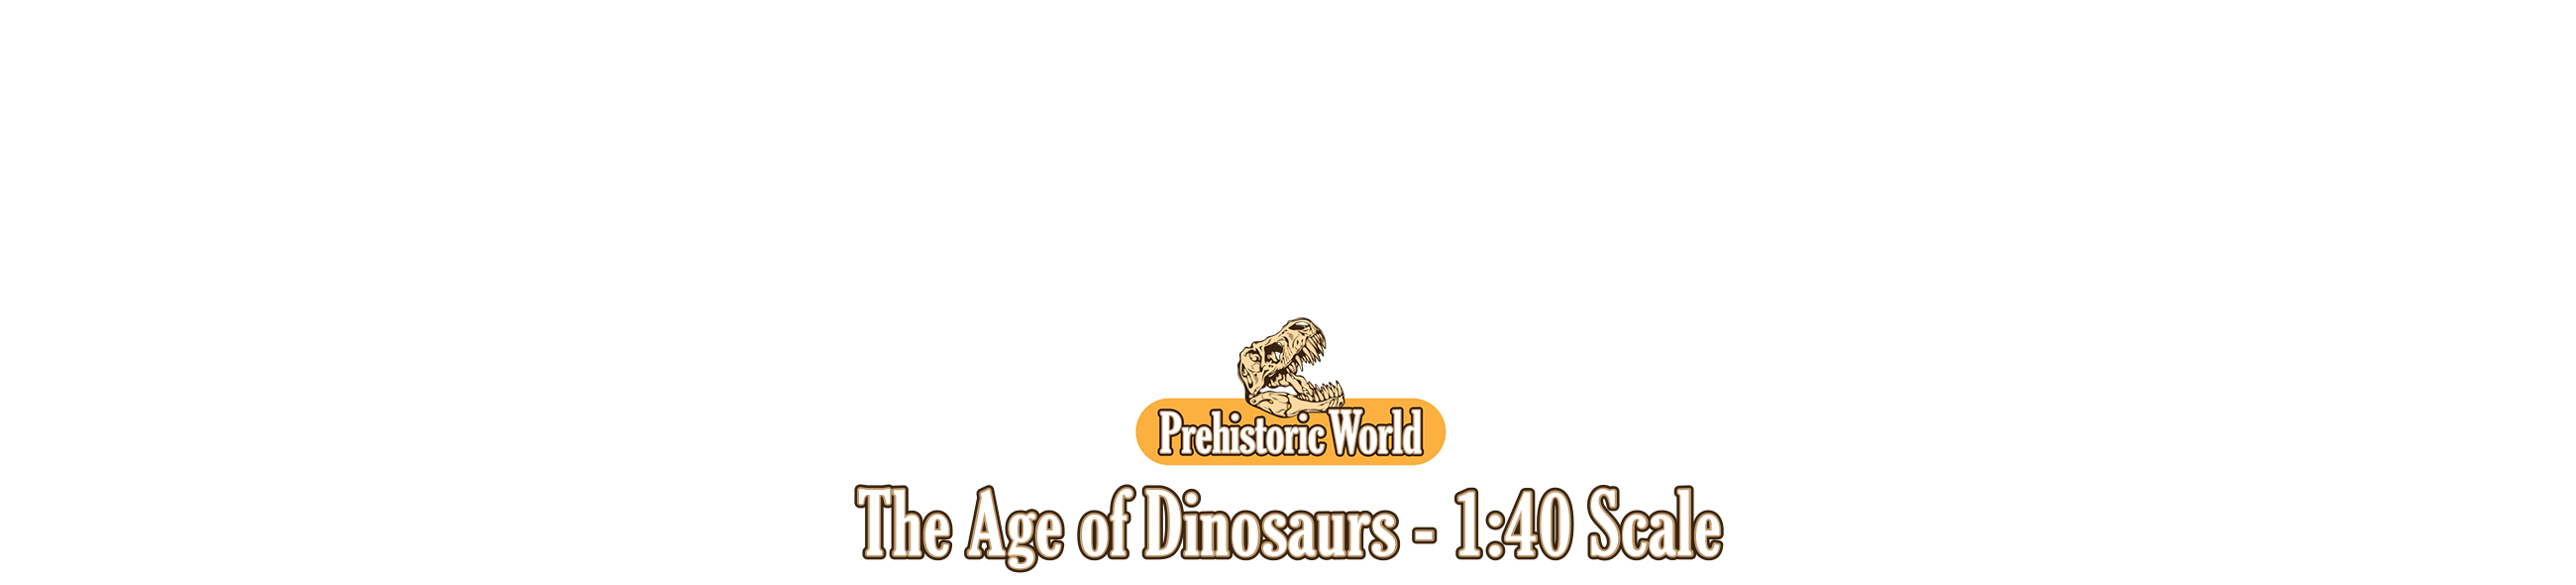 Age of Dinosaurs - 1:40 Scale